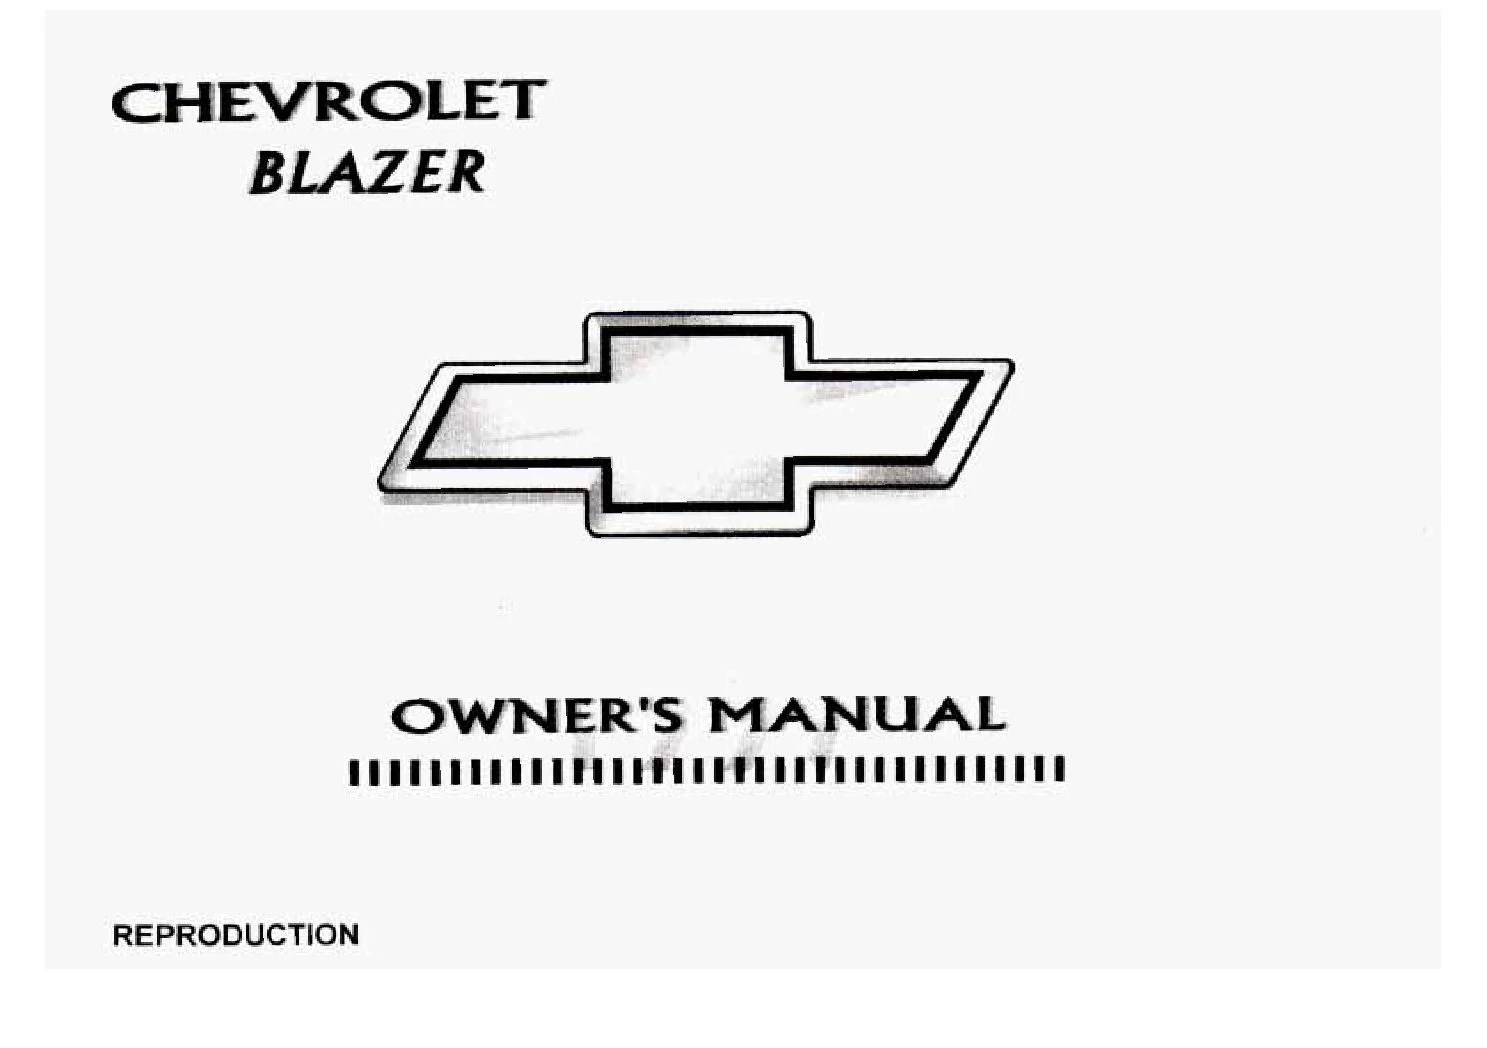 Chevrolet Blazer Owners Manual